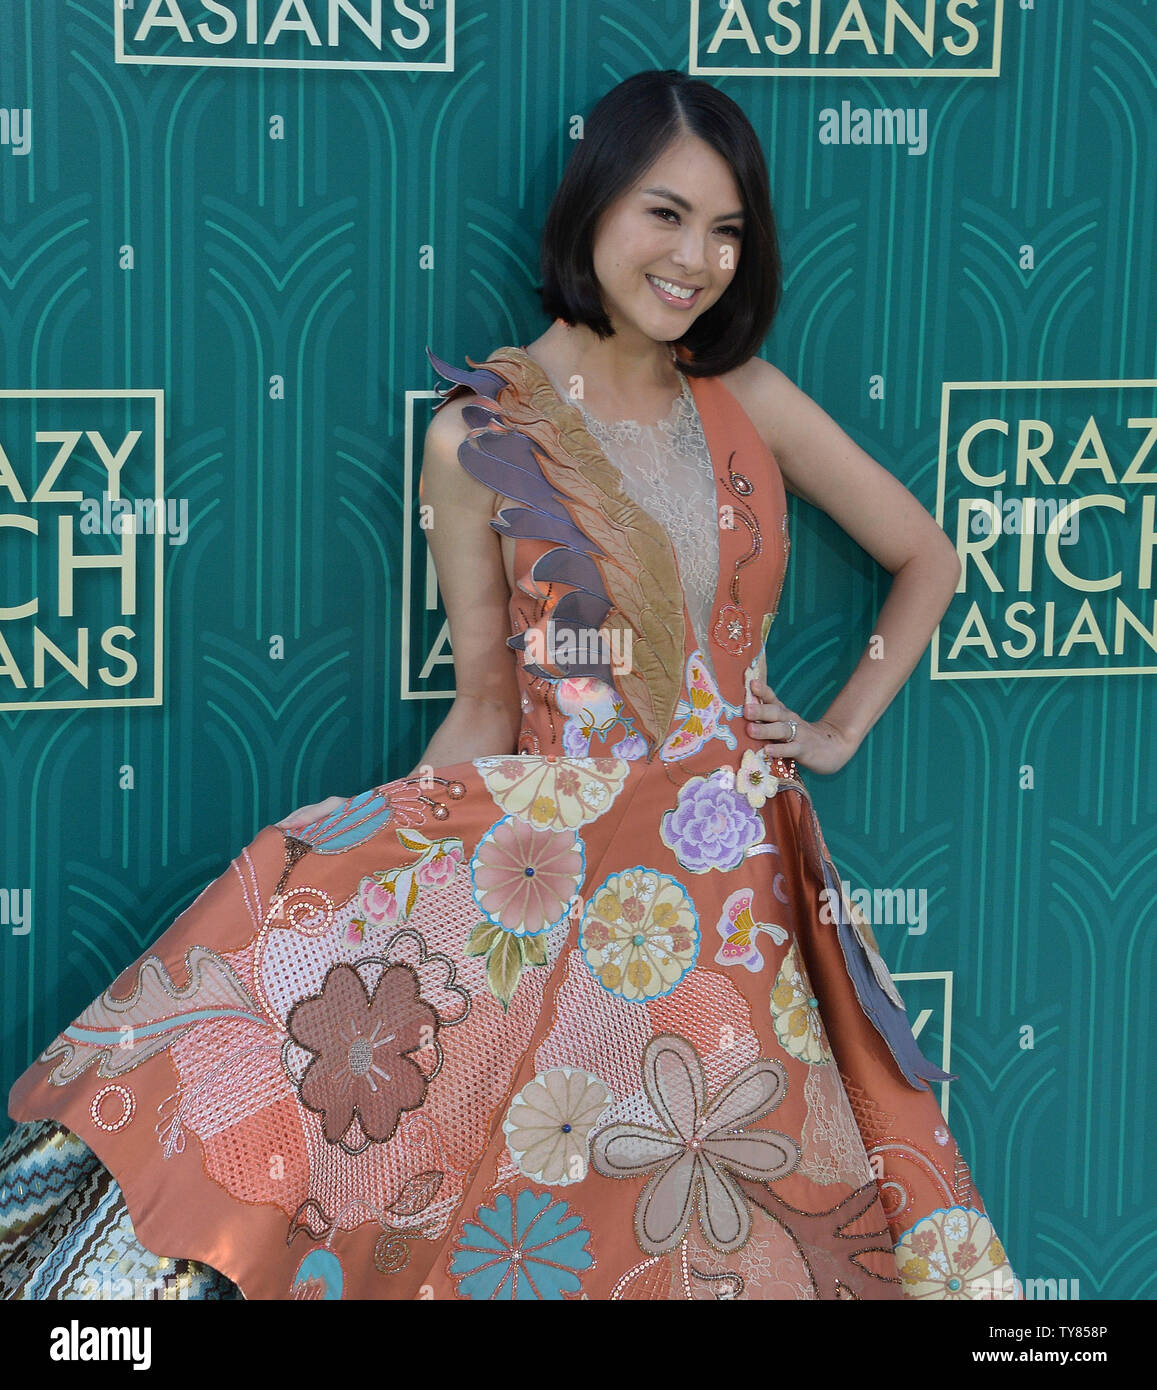 Cast member Carmen Soo attends the premiere of the motion picture comedy 'Crazy Rich Asians' at the TCL Chinese Theatre in the Hollywood section of Los Angeles on July 7, 2018. The story follows Rachel Chu (Wu), an American-born Chinese economics professor, who travels to her boyfriend Nick's (Henry Golding) hometown of Singapore for his best friend's wedding. Before long, his secret is out: Nick is from a family that is impossibly wealthy, he's perhaps the most eligible bachelor in Asia, and every single woman in his ultra-rarefied social class is incredibly jealous of Rachel and wants to bri - Stock Image